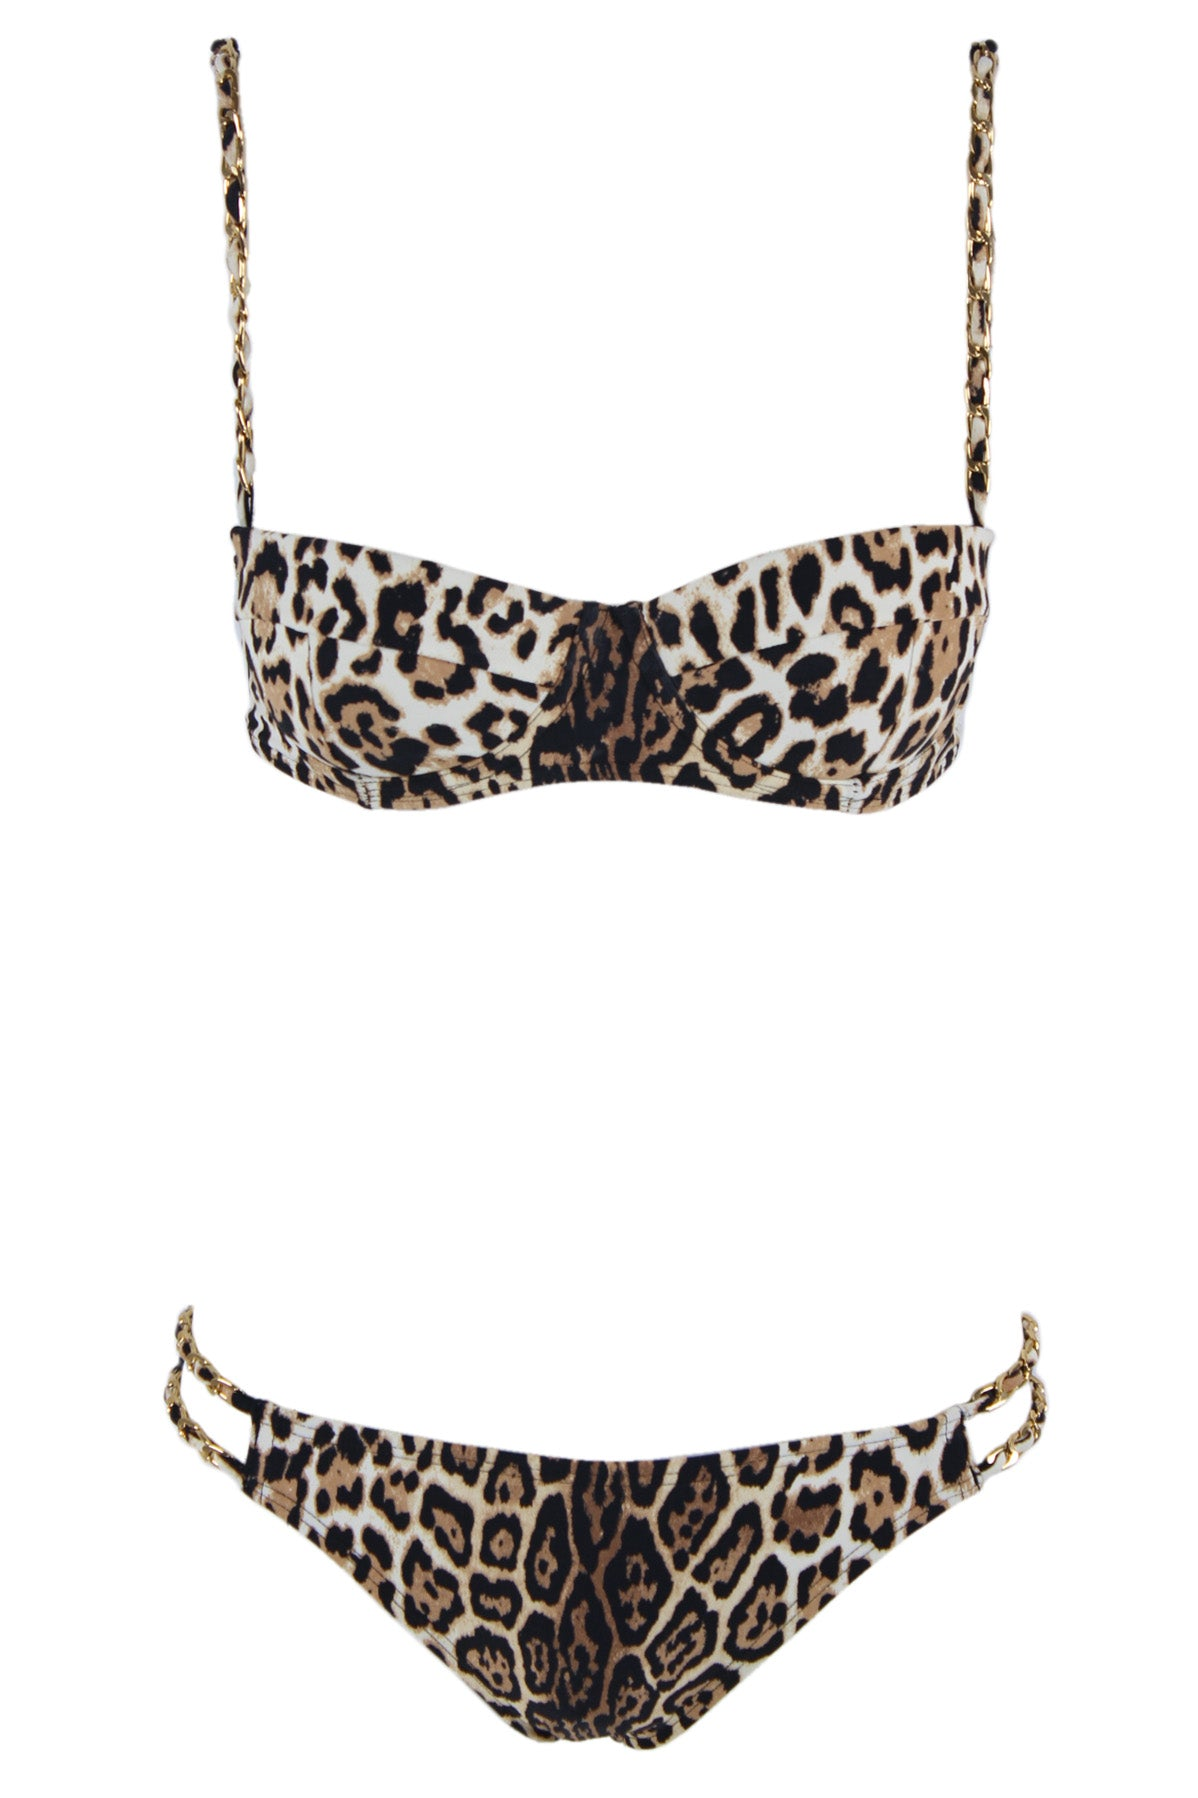 juicy couture brown bikini. features gold tone metal accents for the straps, and a jaguar print throughout- for both top and bottom. sold as two piece. top extra small, and bottom medium.